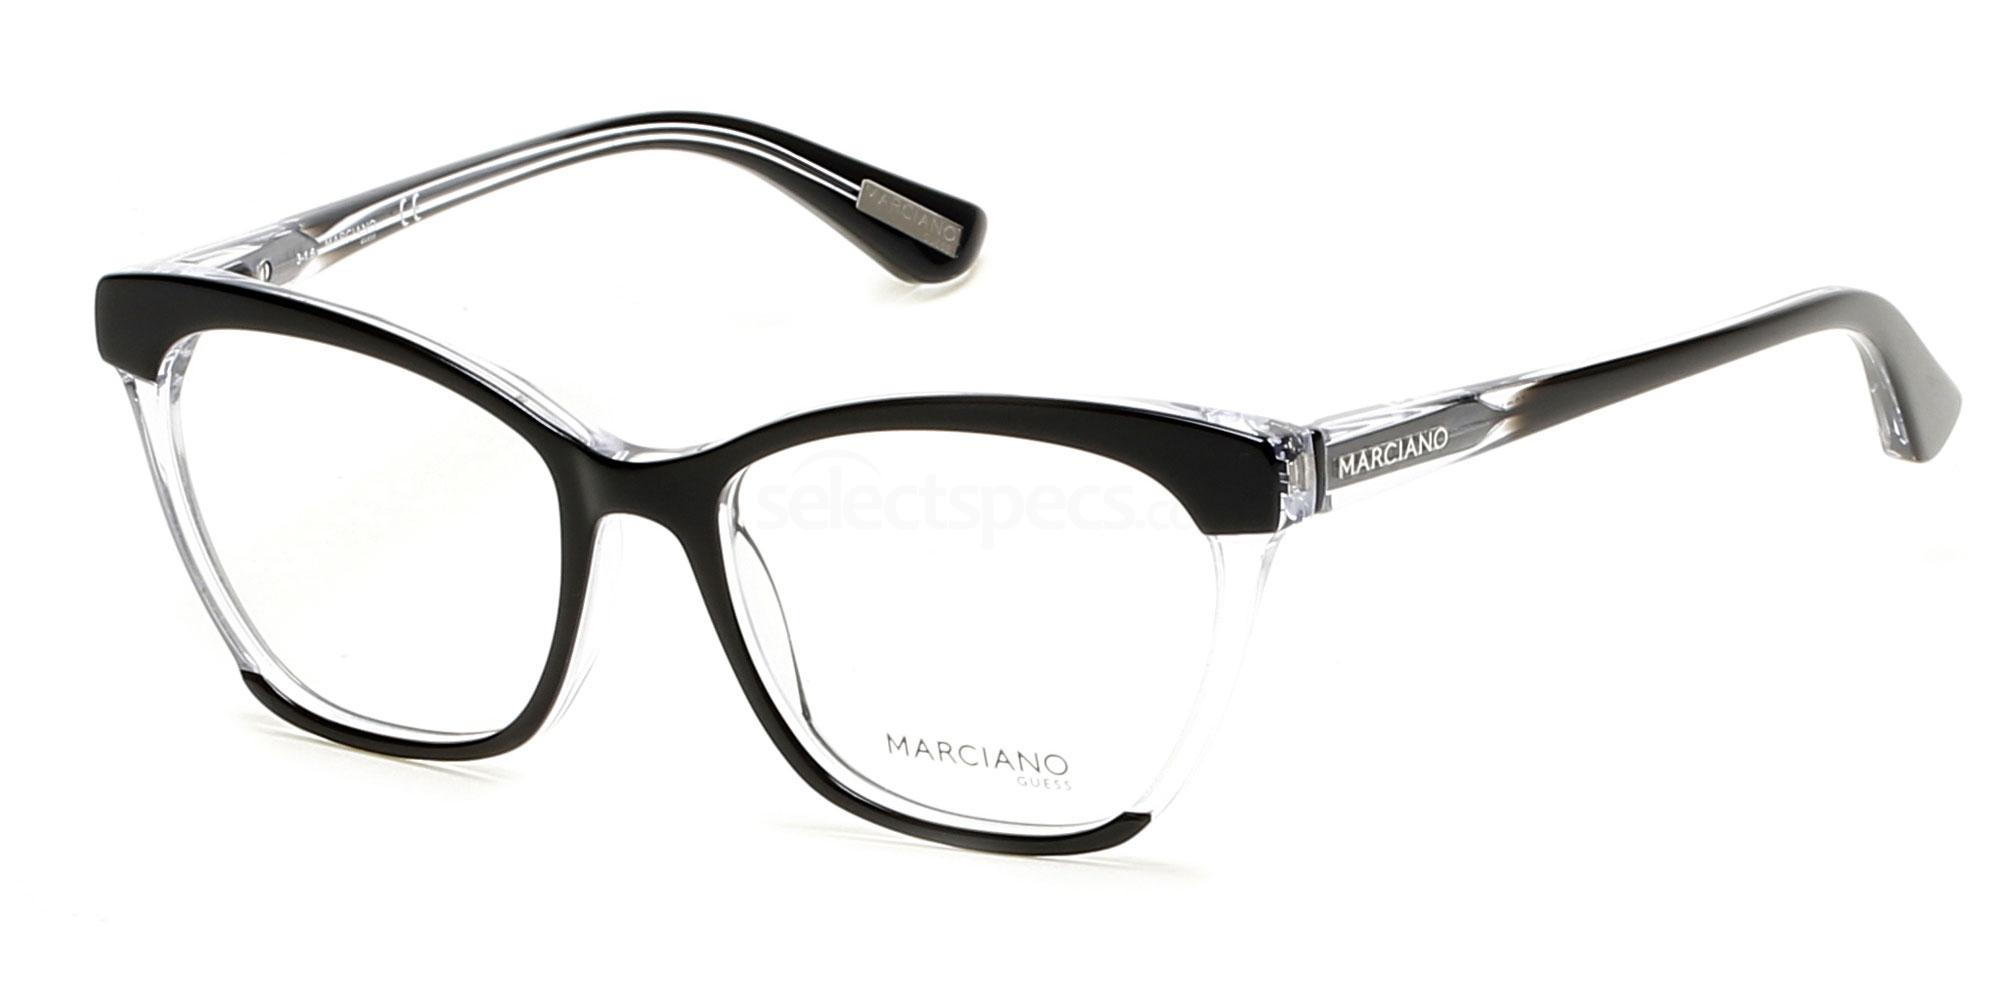 003 GM0287 Glasses, Guess by Marciano